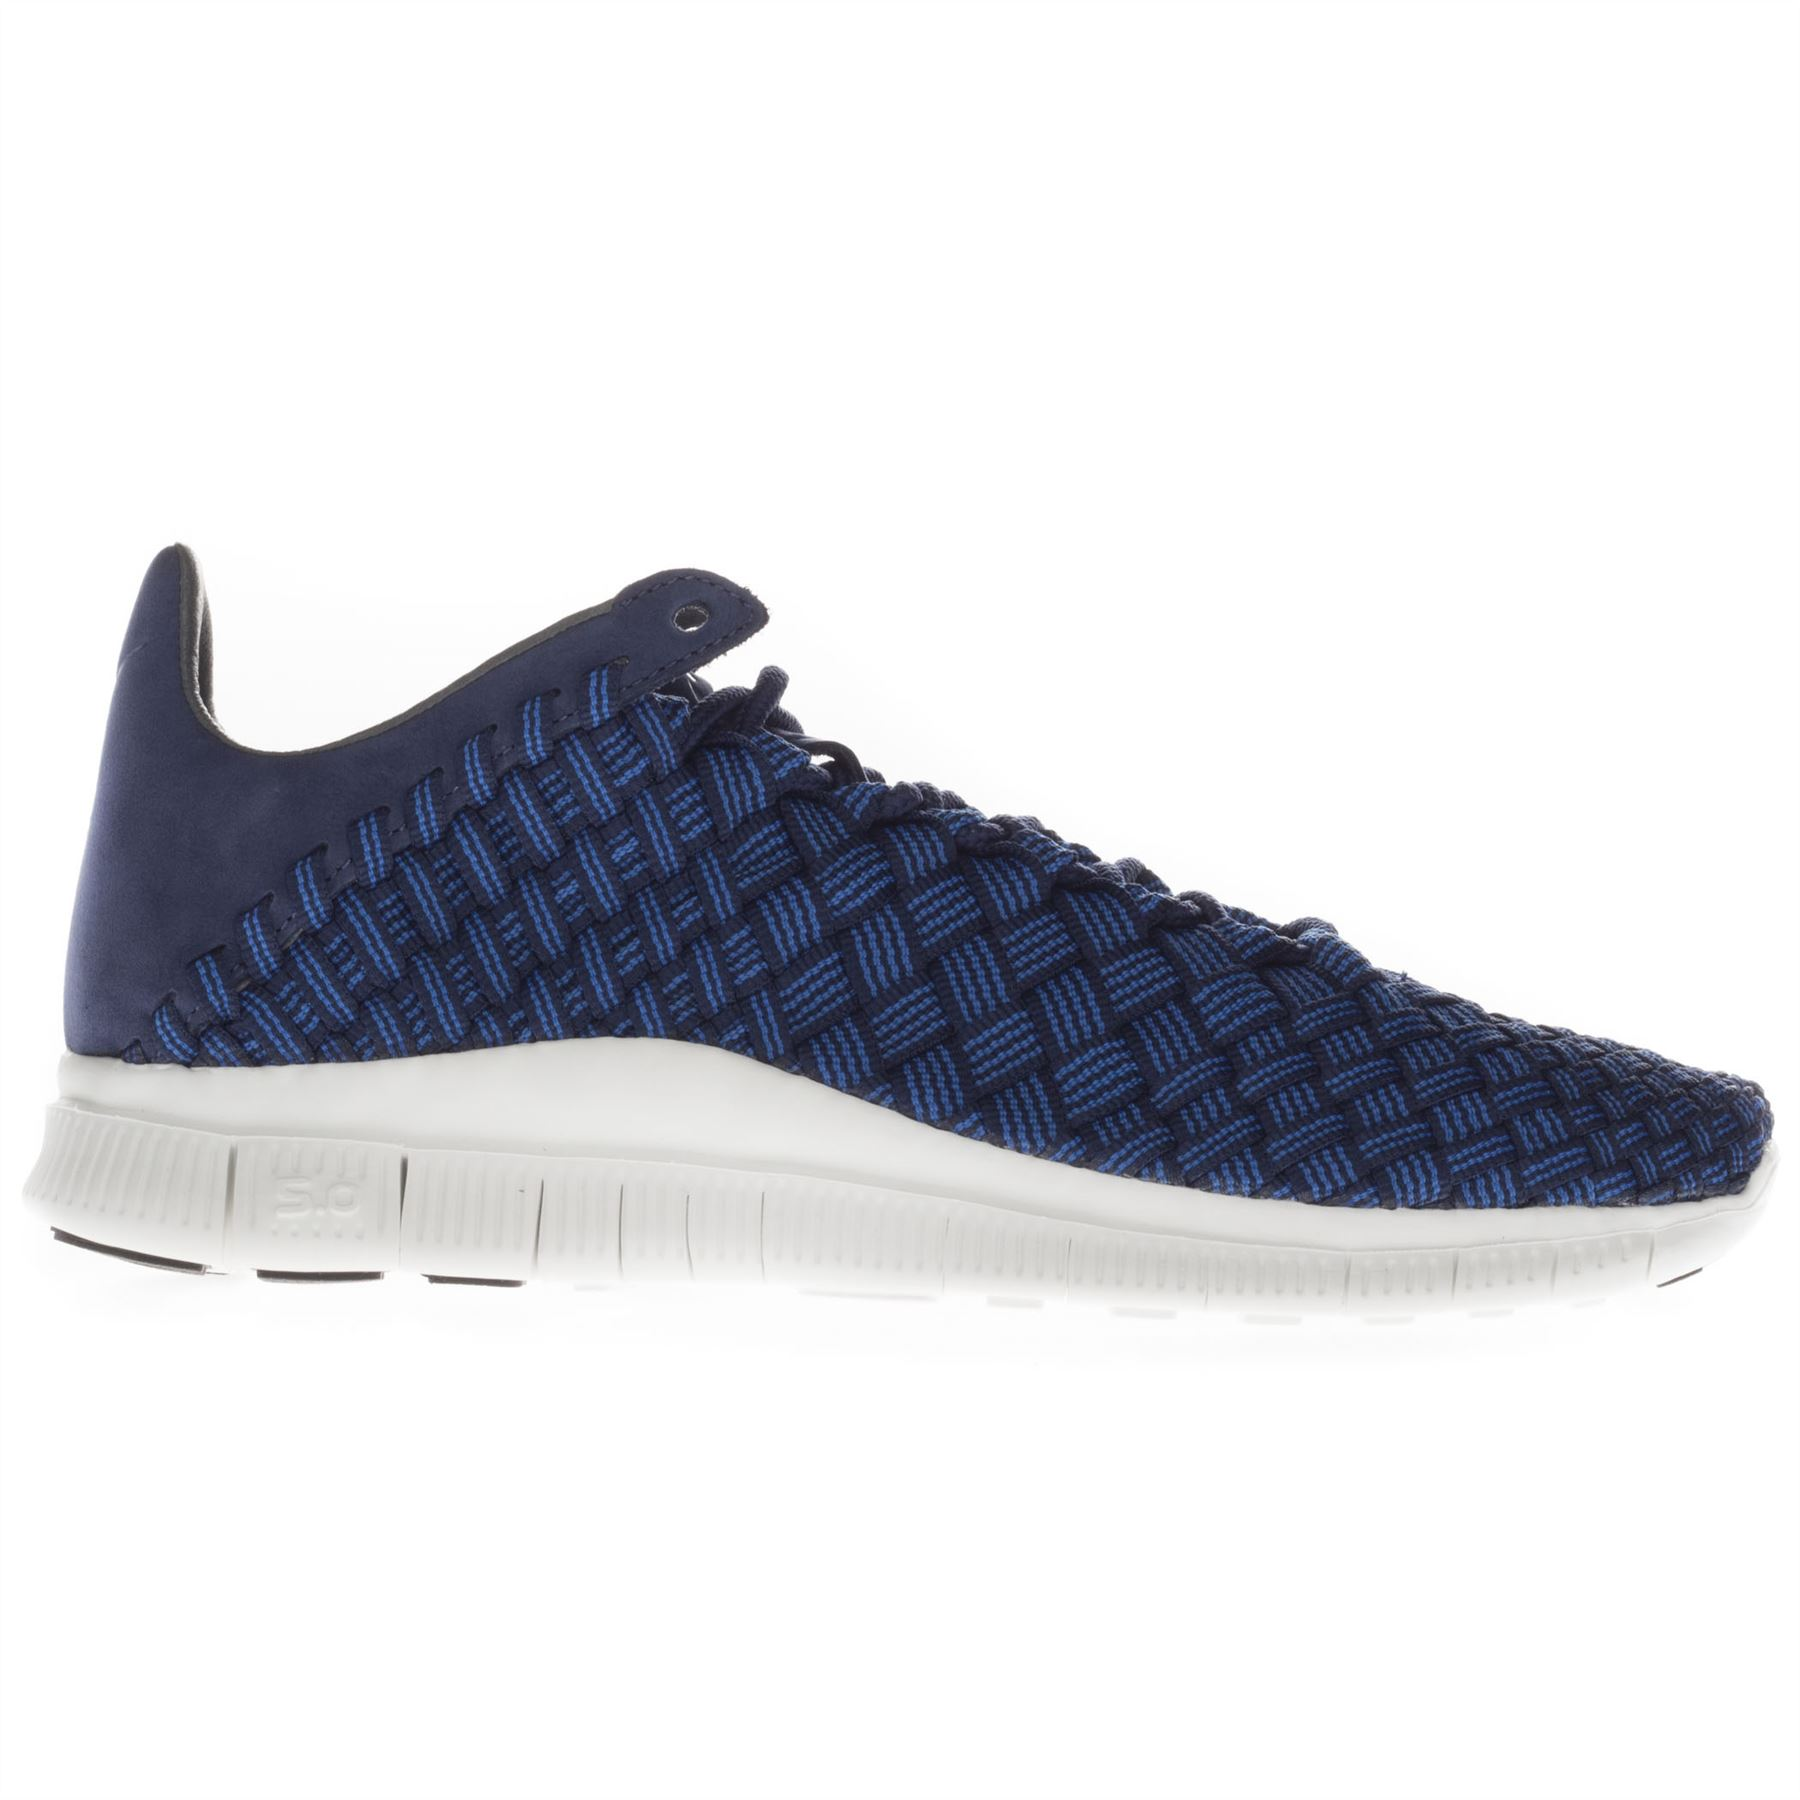 Nike Hommes Top Free Inneva Woven Low Top Hommes Running Sports Casual Noir Bleu Trainers a55d3f